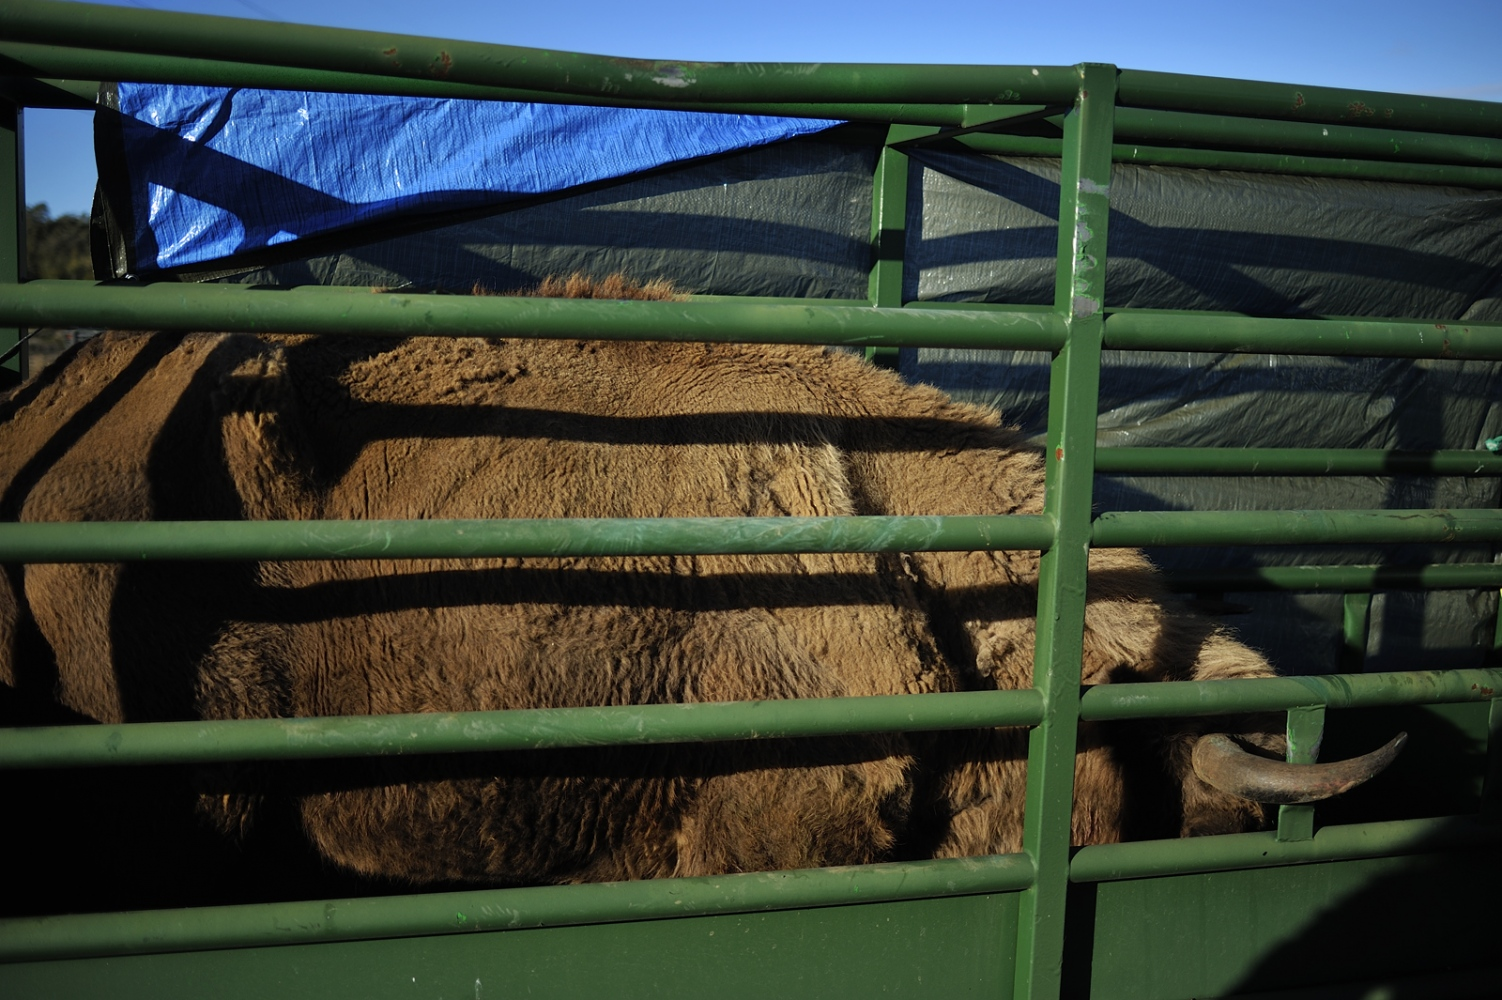 The European Bison Genetic Data Bank has created by species variability preservation.